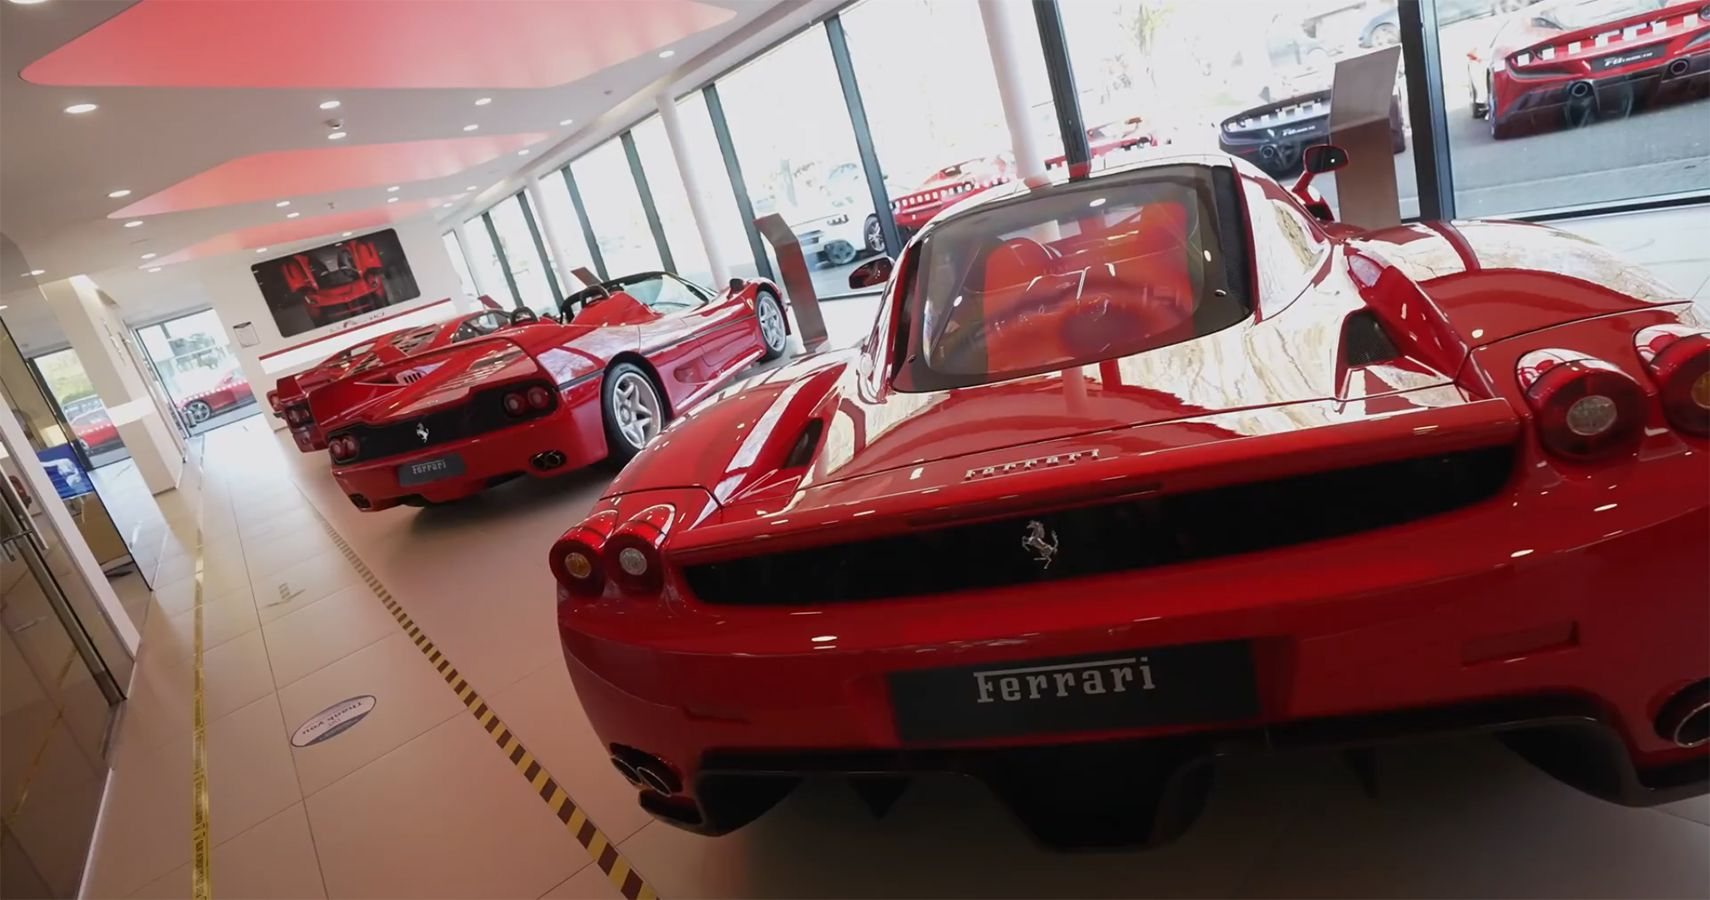 Witness Five Rare Ferraris Collectively Worth $15.3 Million Under The Same Roof